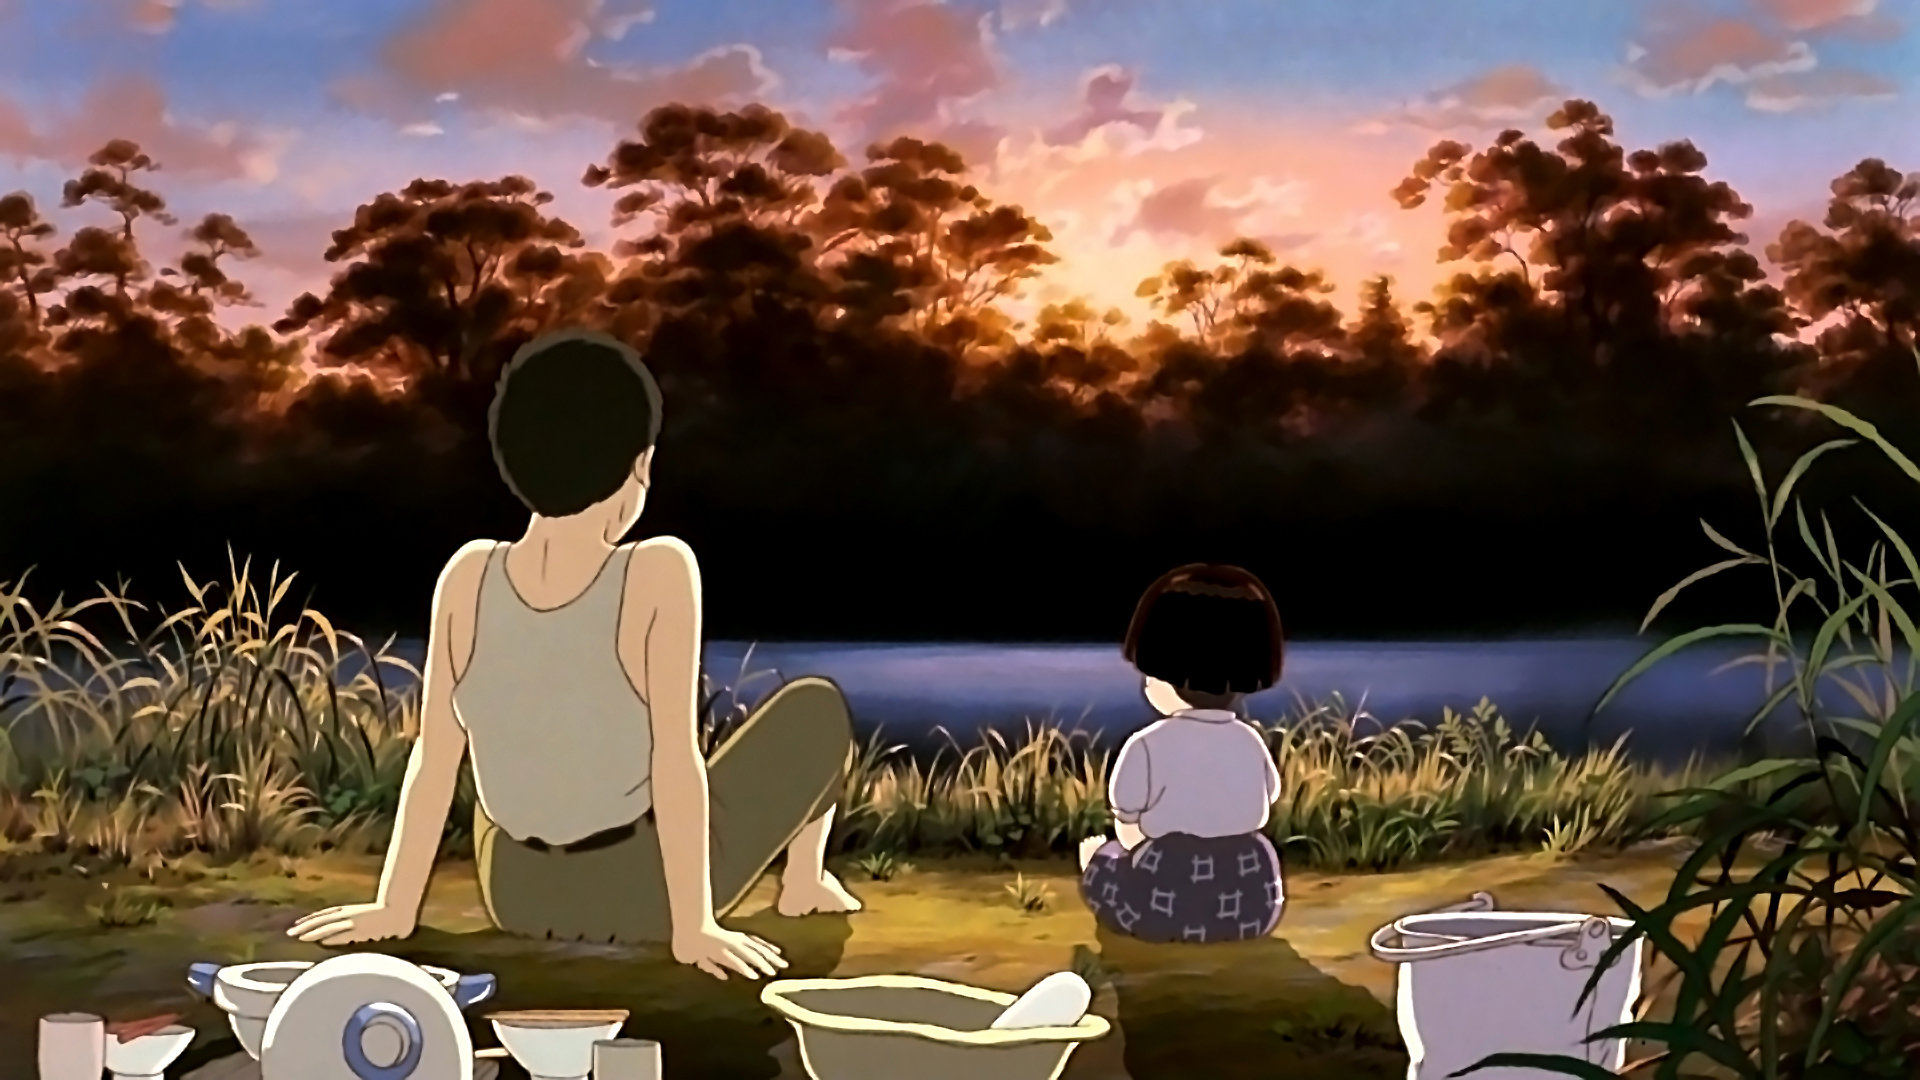 Free Grave Of The Fireflies high quality wallpaper ID:241879 for hd 1080p desktop